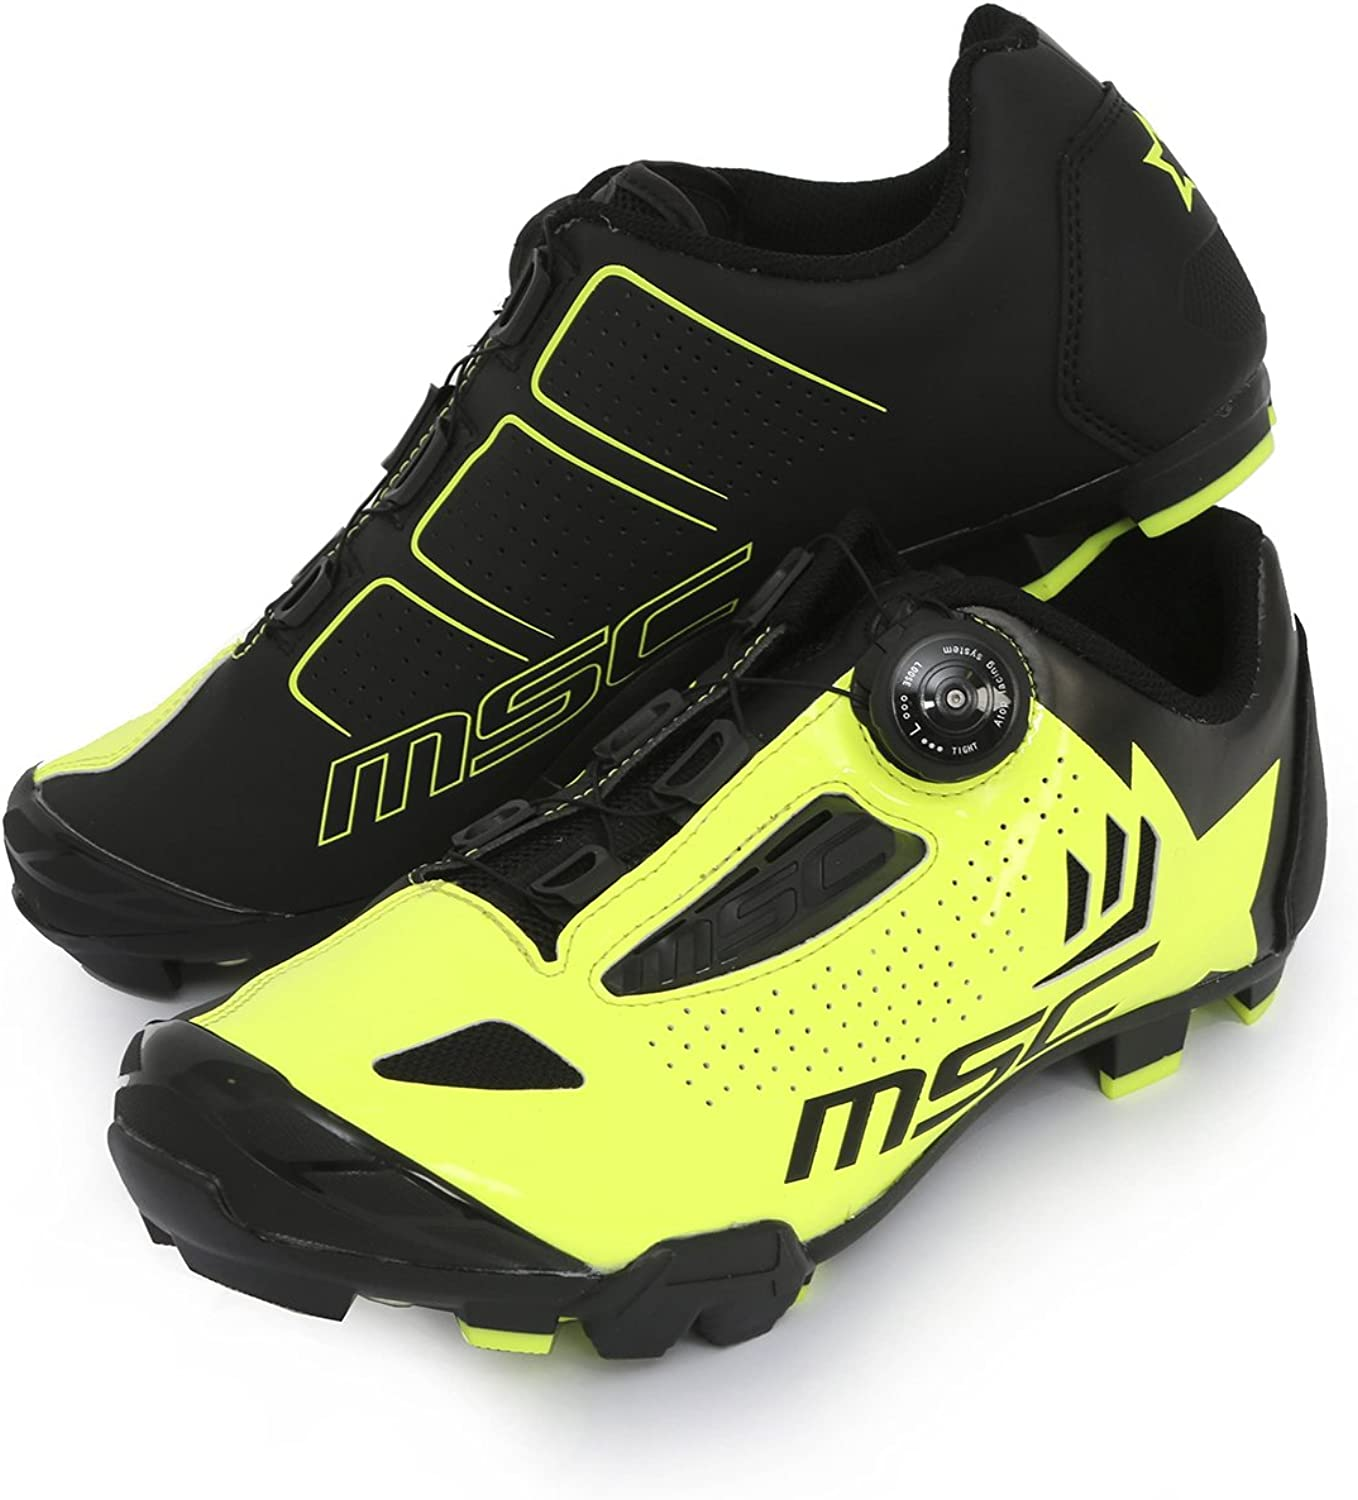 MSC Bikes Aero XC Zapatillas, Unisex Adulto: Amazon.es: Deportes y ...